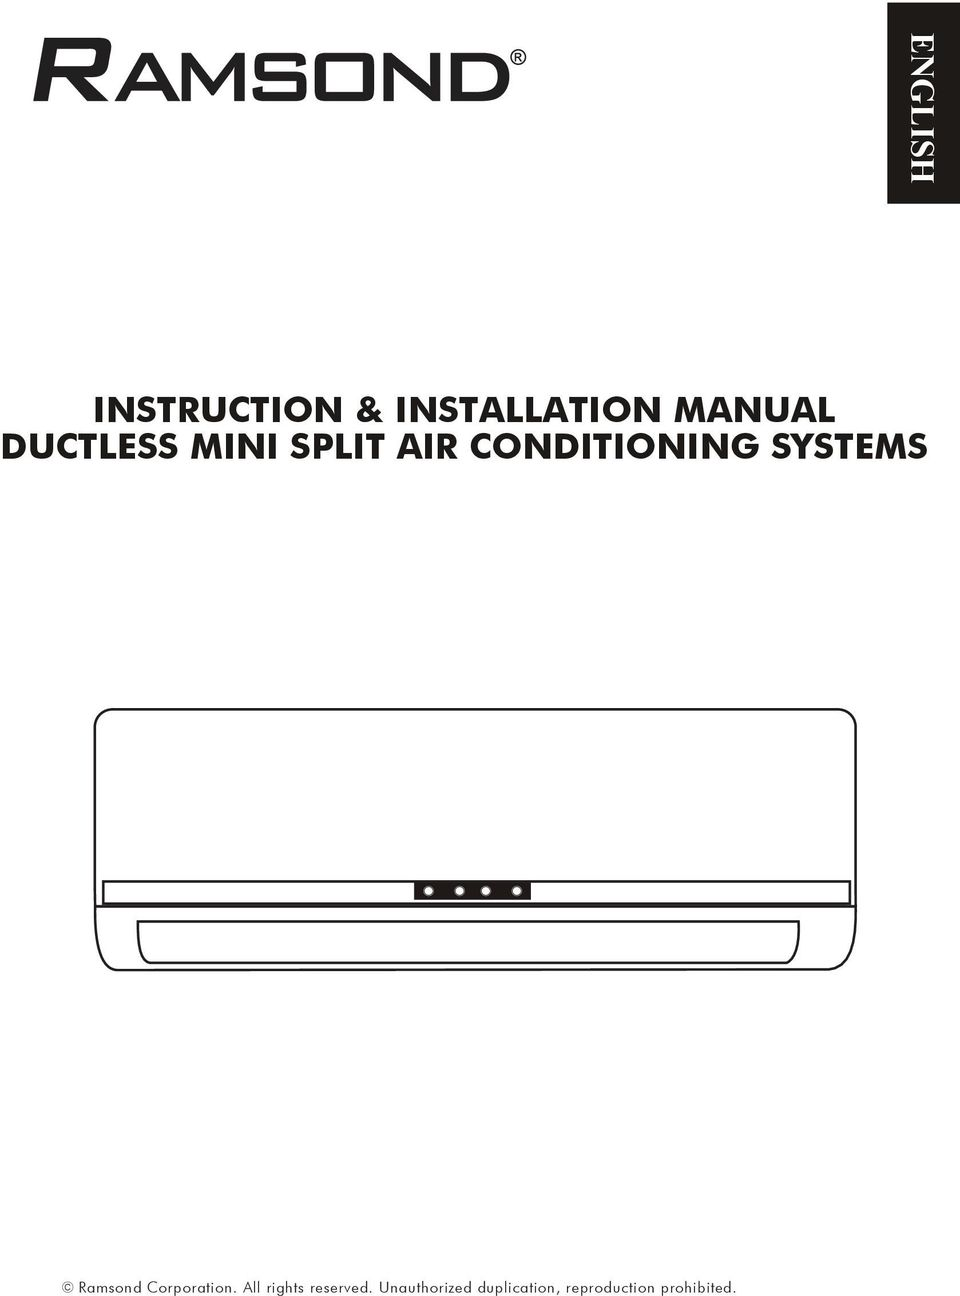 Daikin Ducted Air Conditioning Installation Manual Best 2018 Mini Split Wiring Diagram Inverter User The